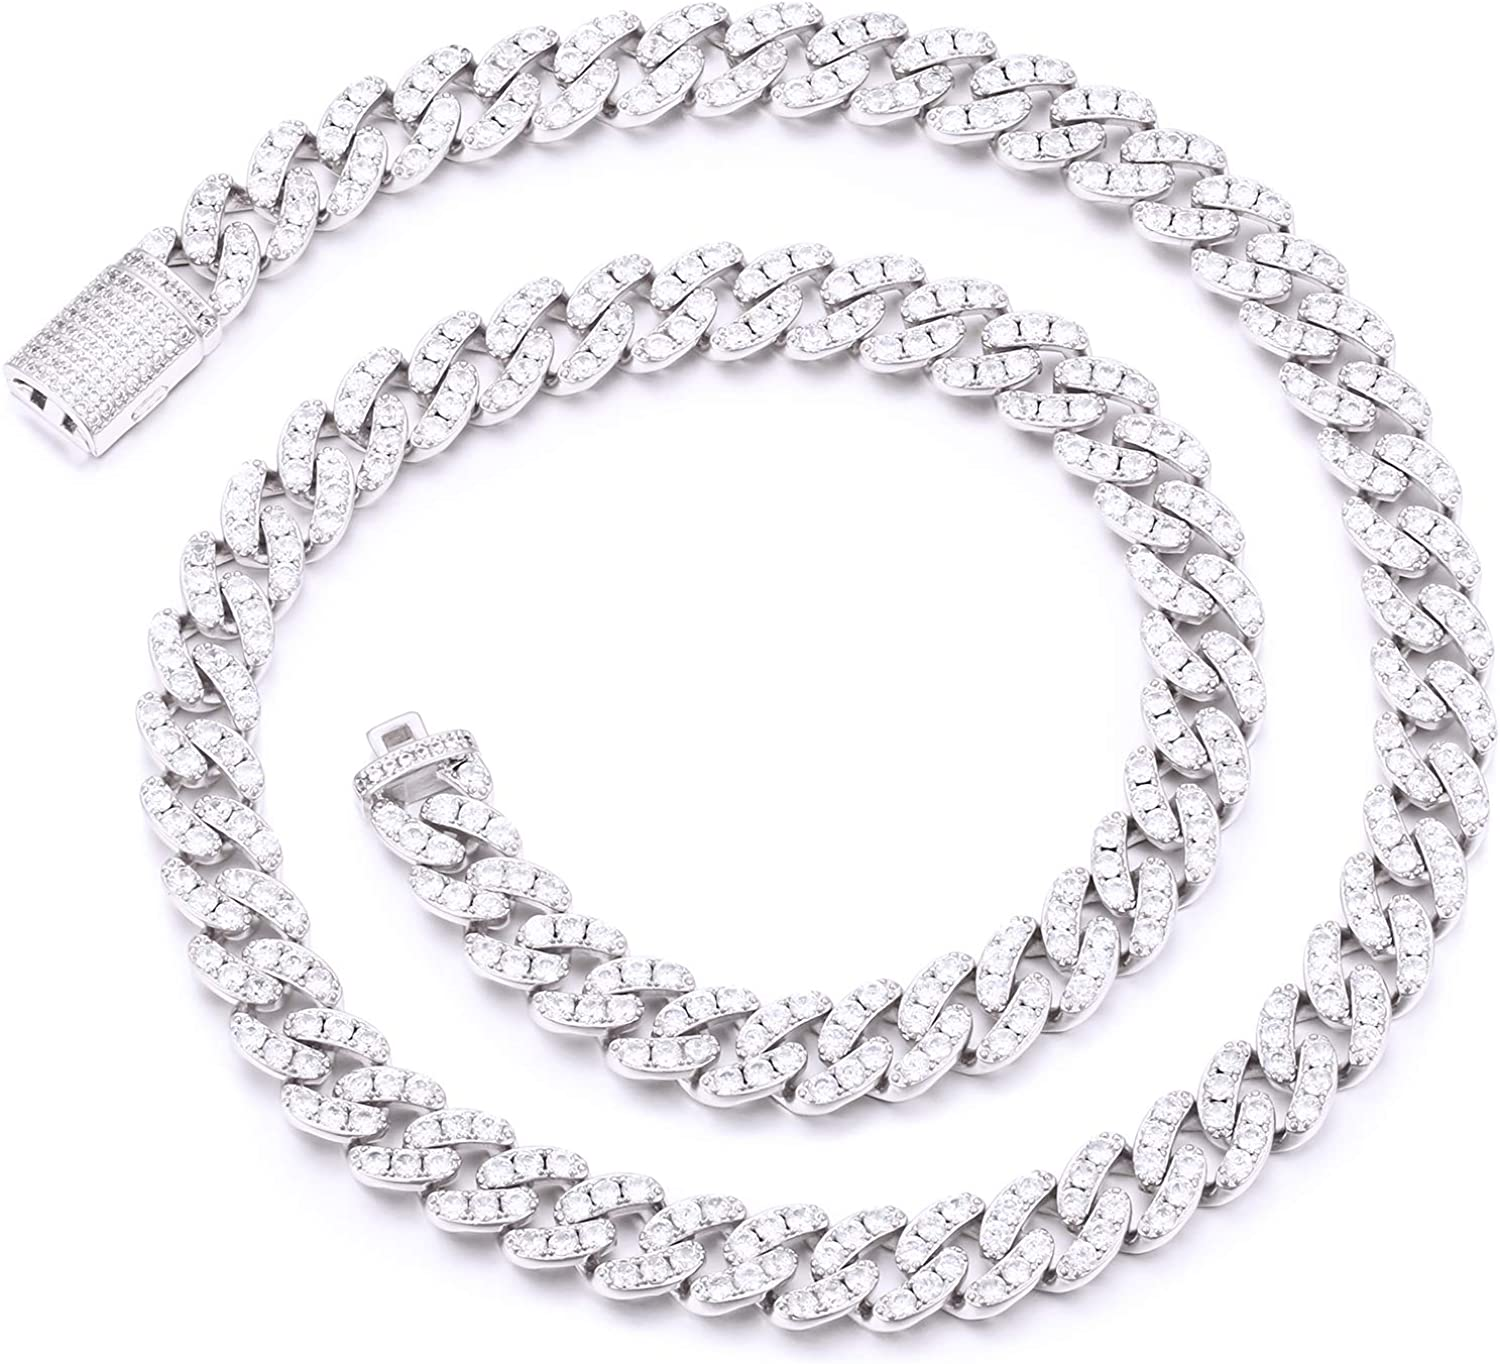 YIMERAIRE Lab Simulated Diamond Cuban Link Chain Choker for Women| 18K Gold White Gold Plated 6MM/8MM/12MM/14MM/15MM Miami Link Chain for Men, Full CZ Prong Set Link Necklace Iced Out, with Gift Box